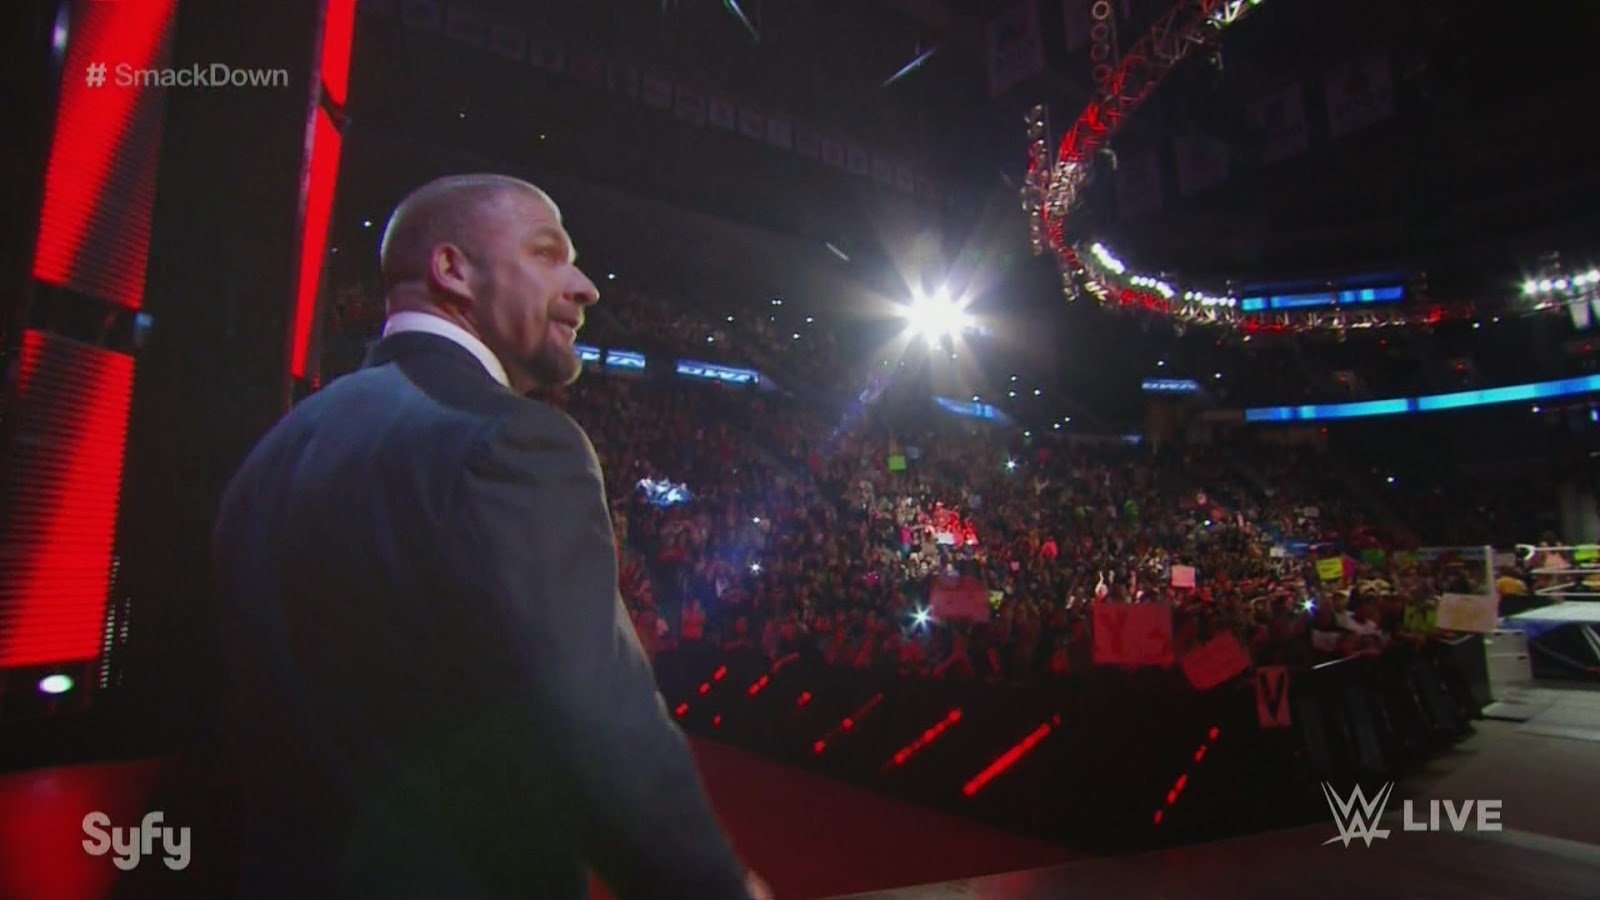 How Wwe Came About